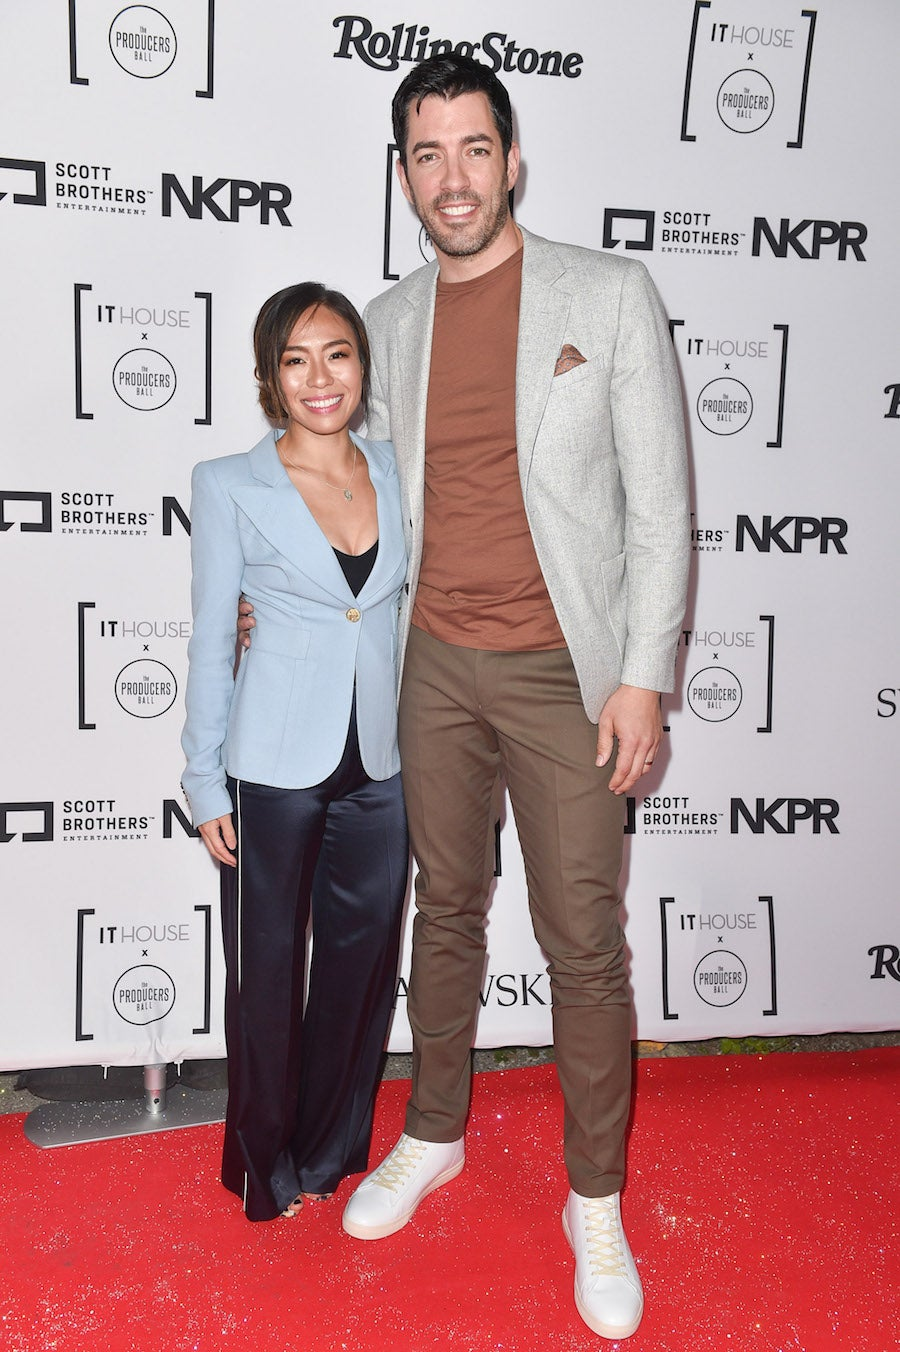 Drew Scott, Linda Phan - Producers Ball IT House TIFF 2018 | SWAGGER Magazine